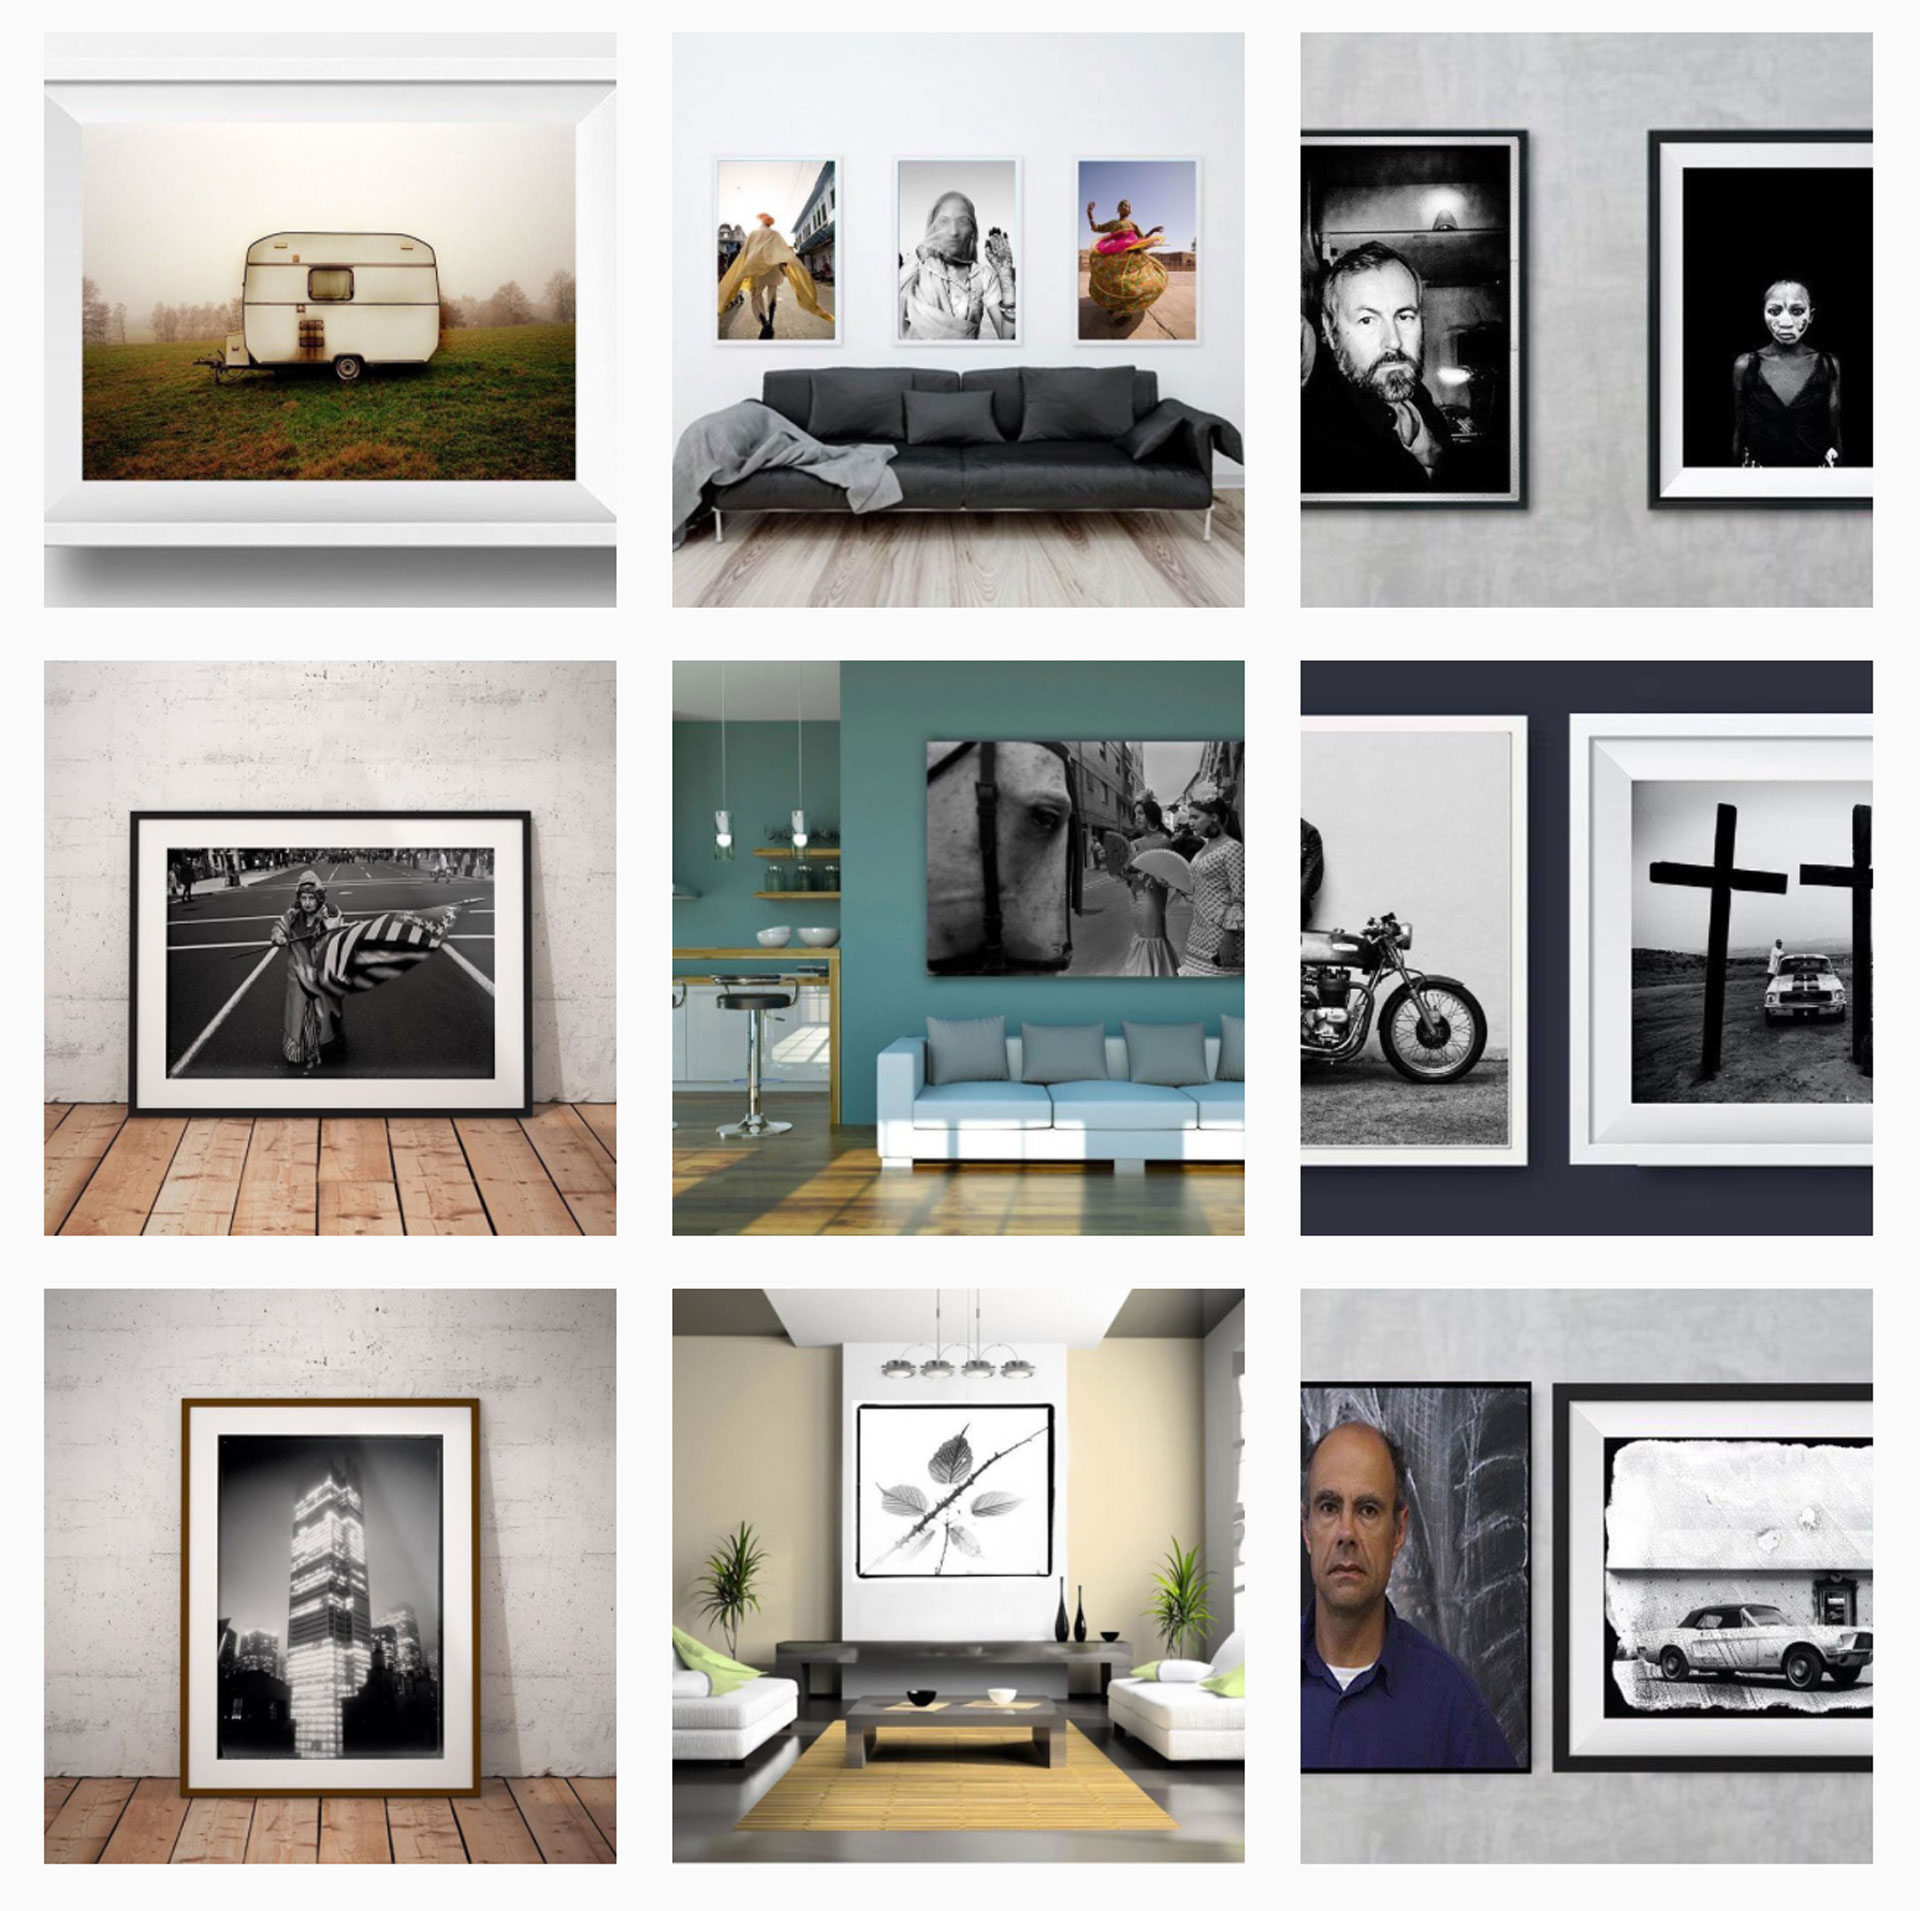 Interior Design Inspiration - daily fine art photography prints updates on Instagram